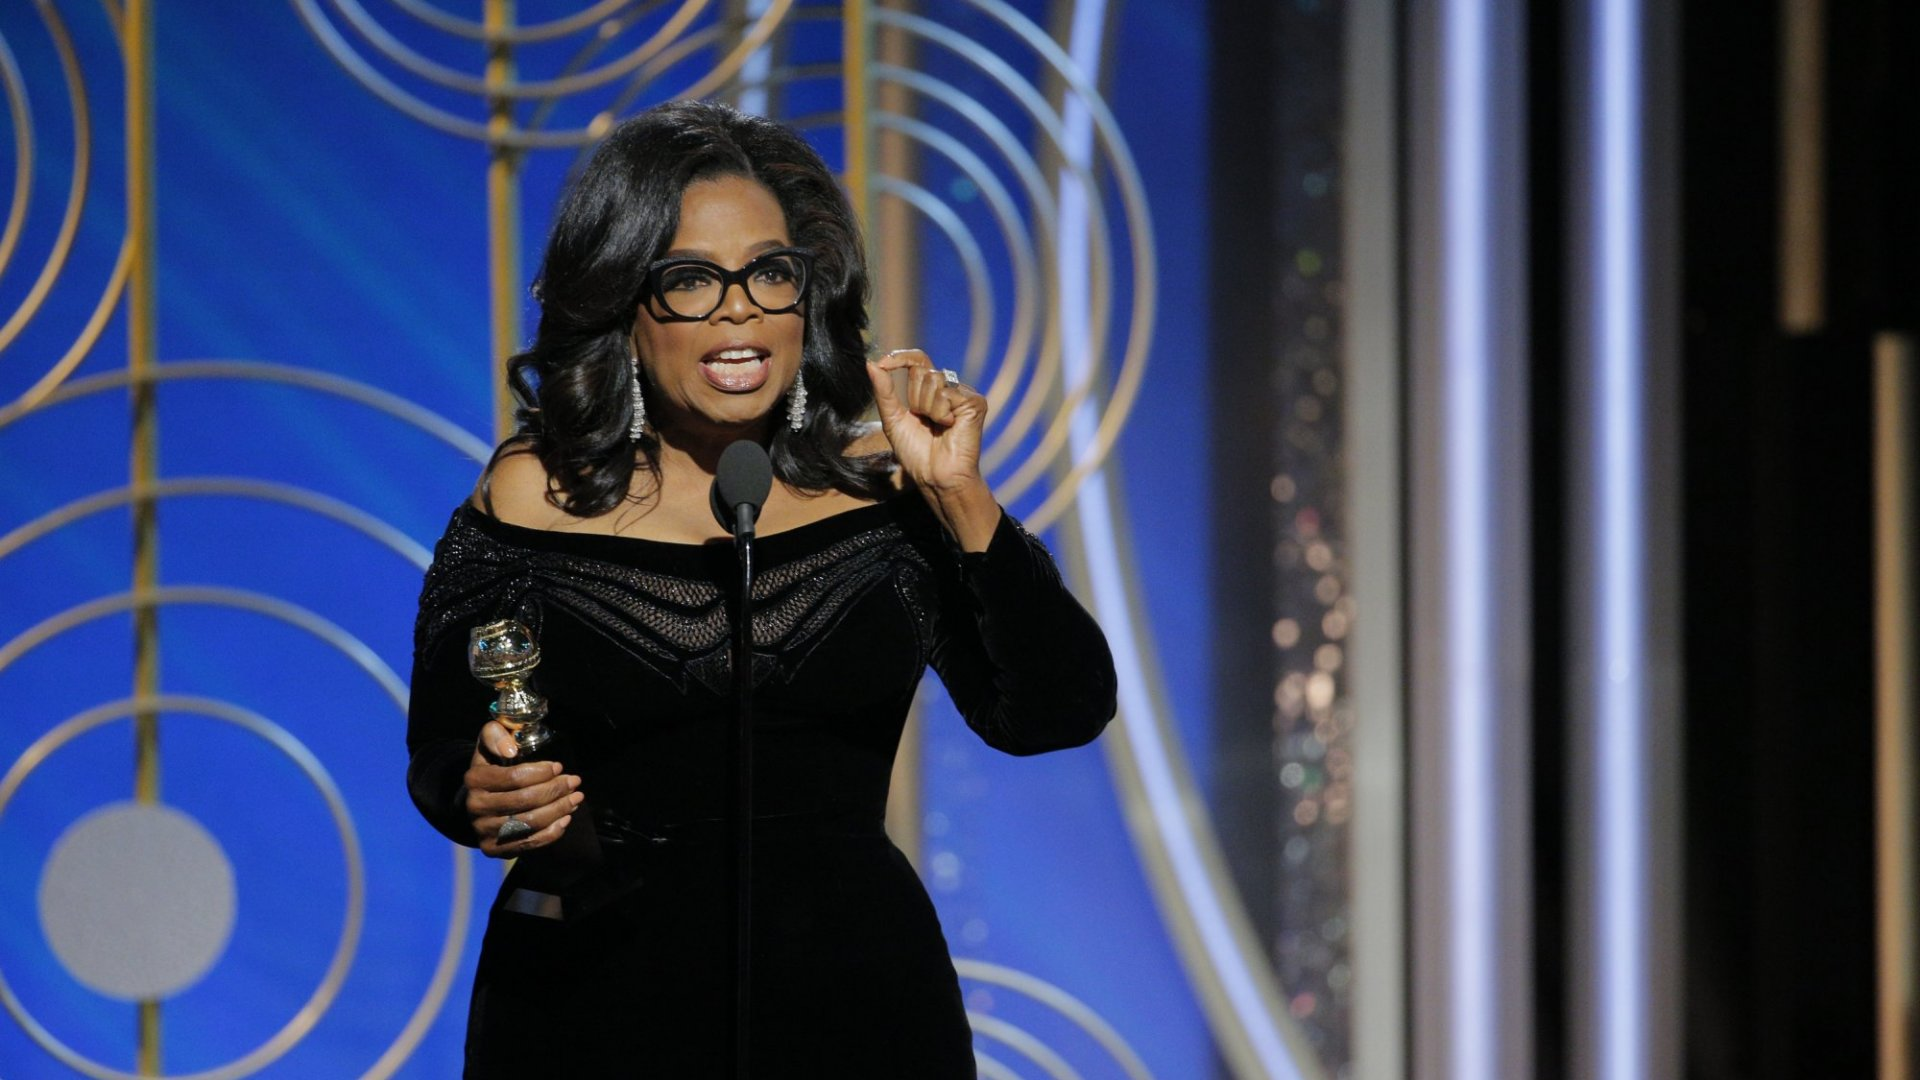 Oprah's Speech At The Golden Globes Was a Master Class In Leadership. Here's What You Should Learn From It